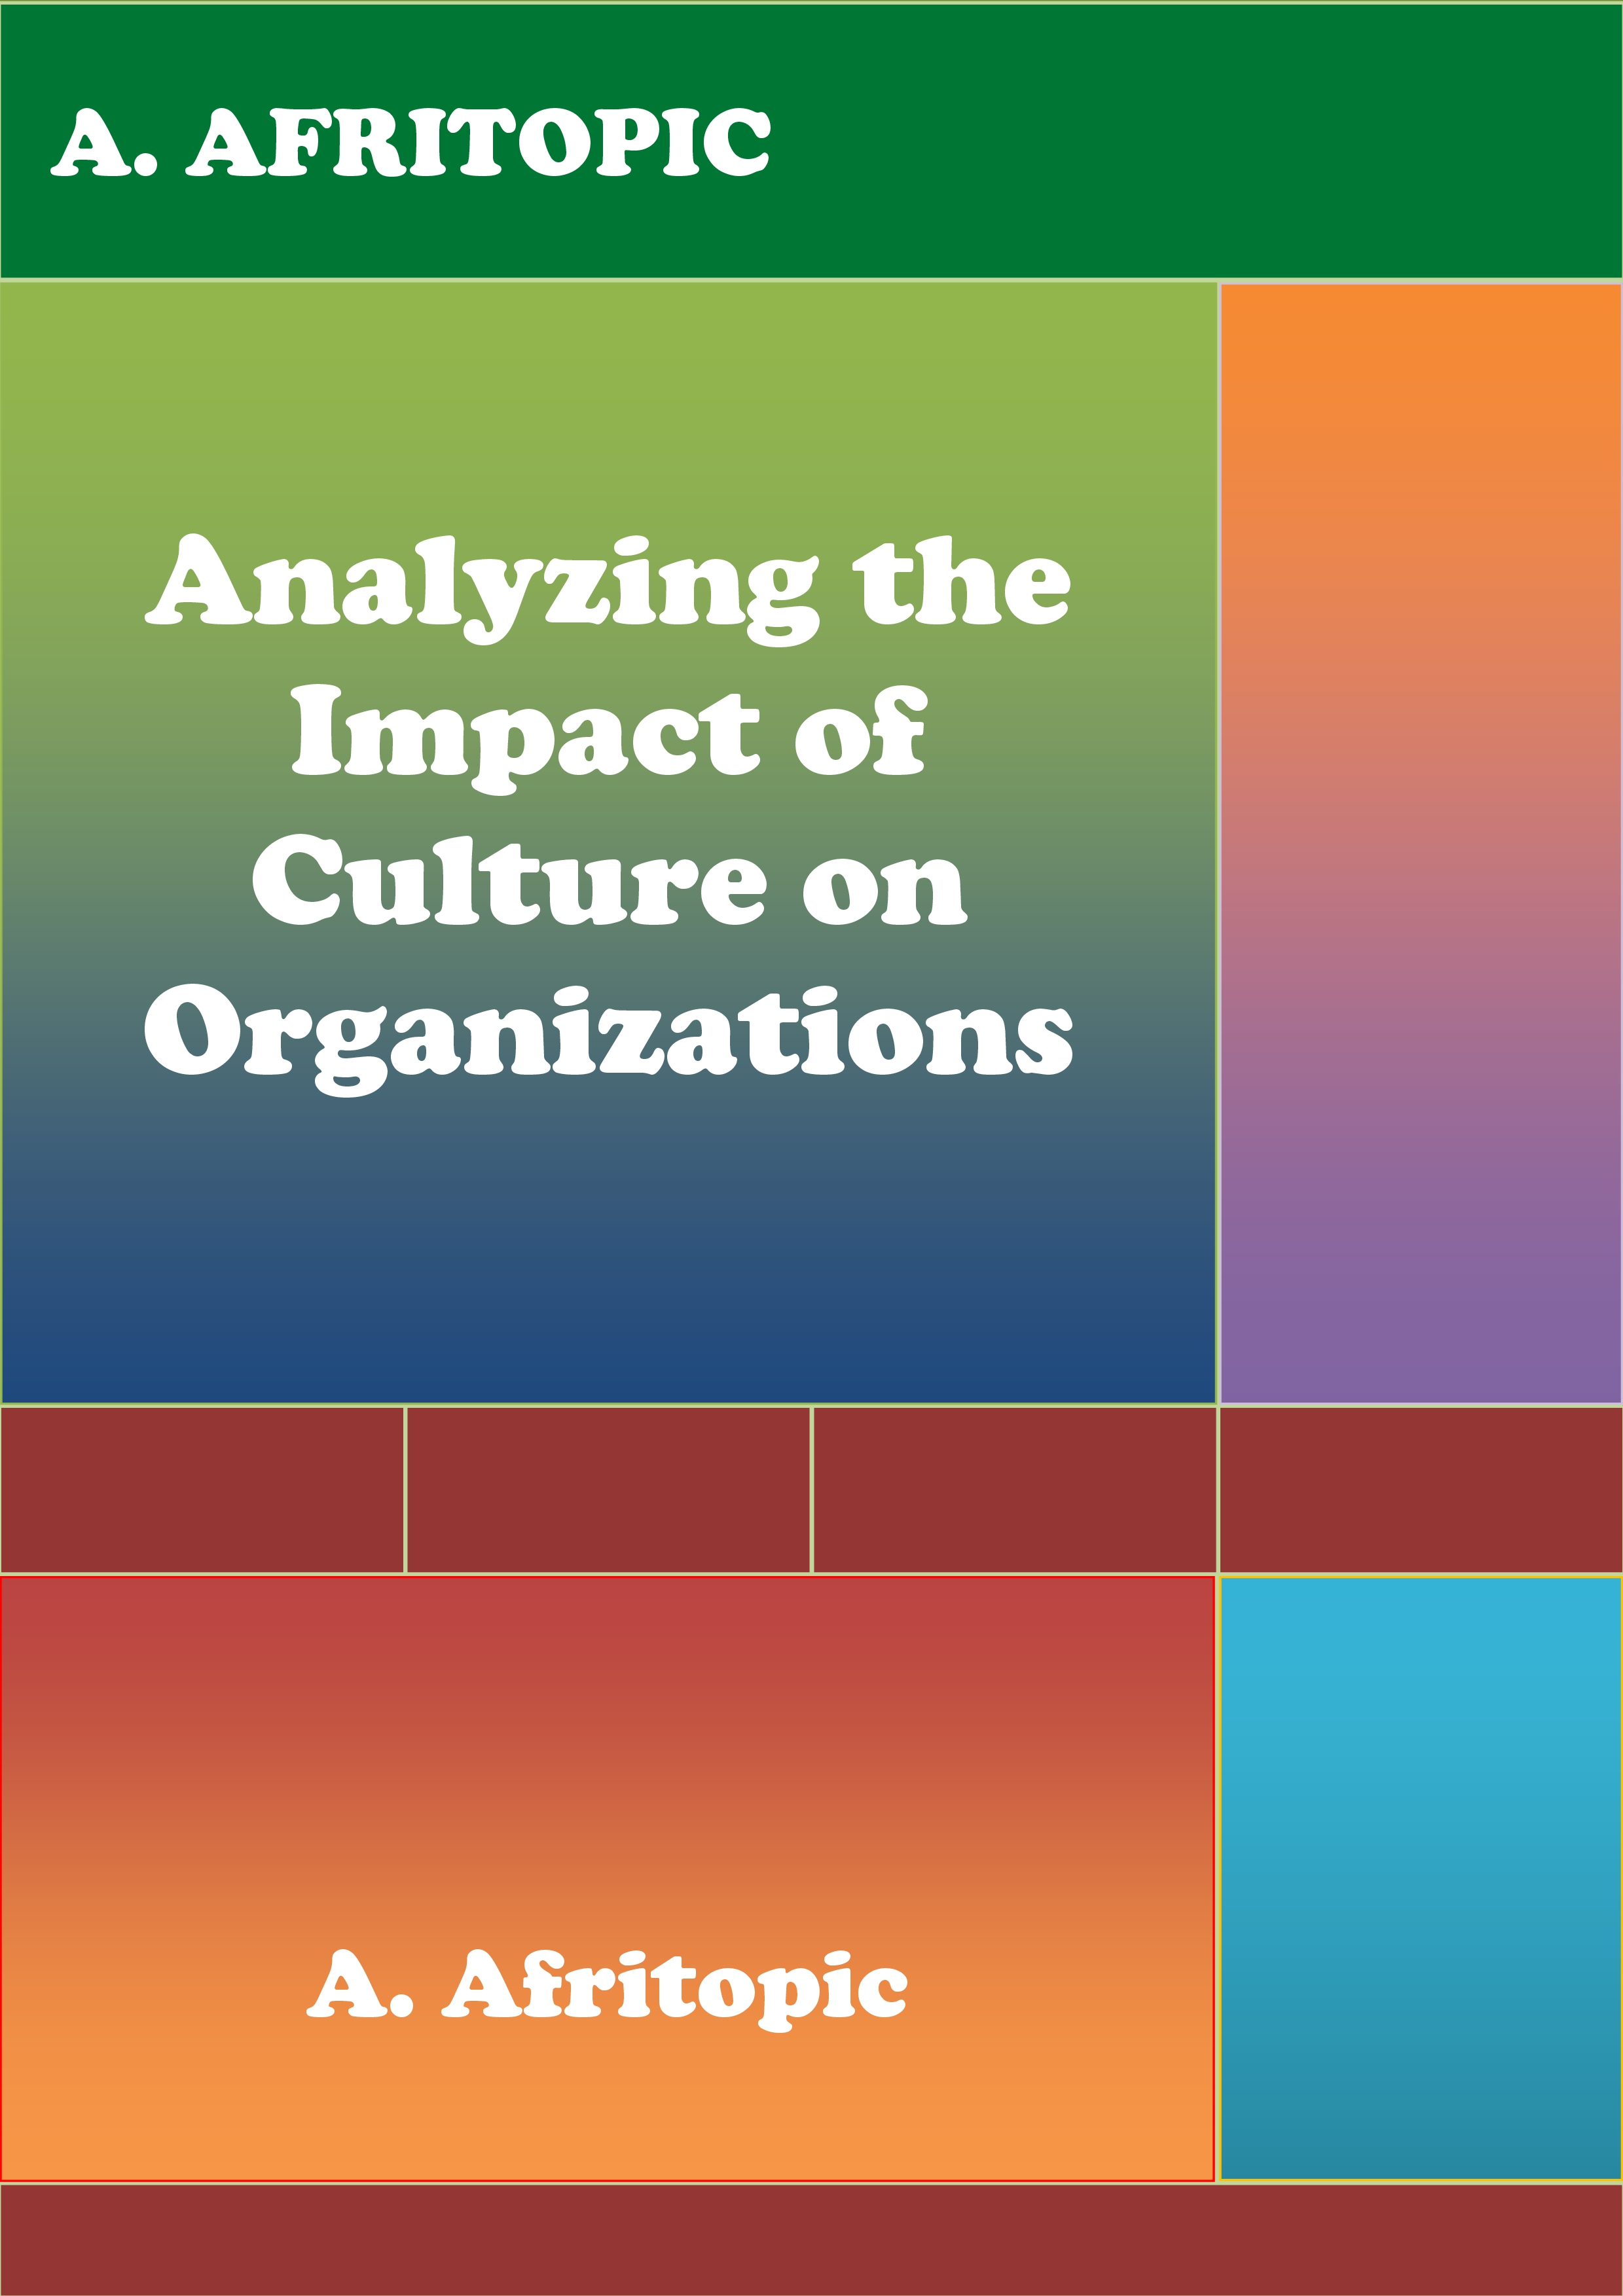 the impact of personality and culture In cross-cultural psychology an accepted framework for studying behaviors is examining the effects of contextual variables (or ecology) on culture, and culture's effects on individuals and their personalities, and behaviors (segall, dasen, berry, & poortinga, 1999.